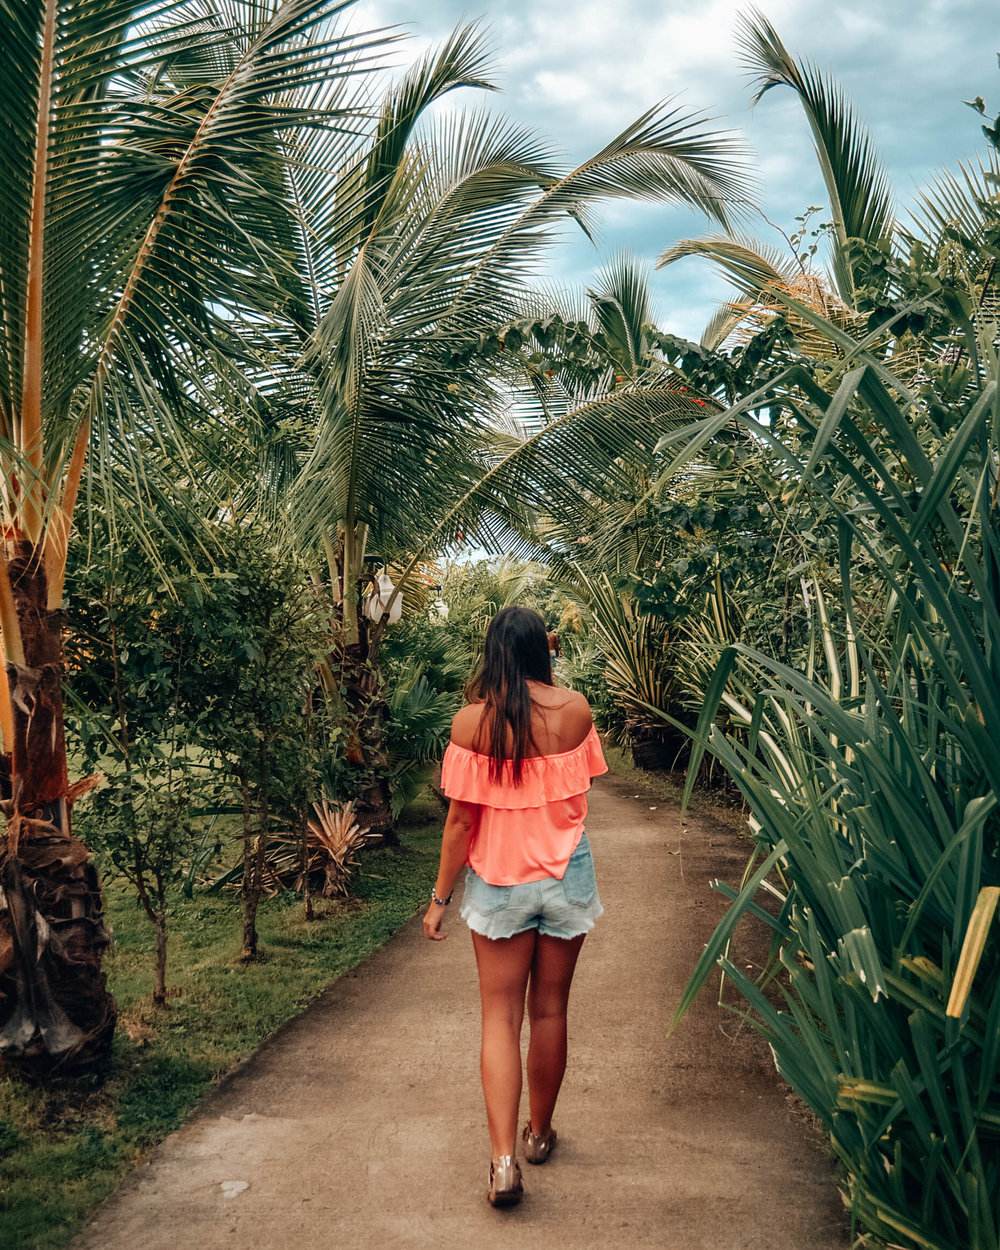 Panama's hidden slice of paradise - Playa Venao - is an incredible tiny beach town on the pacific side of the country. Here's why you should add it to your itinerary now!